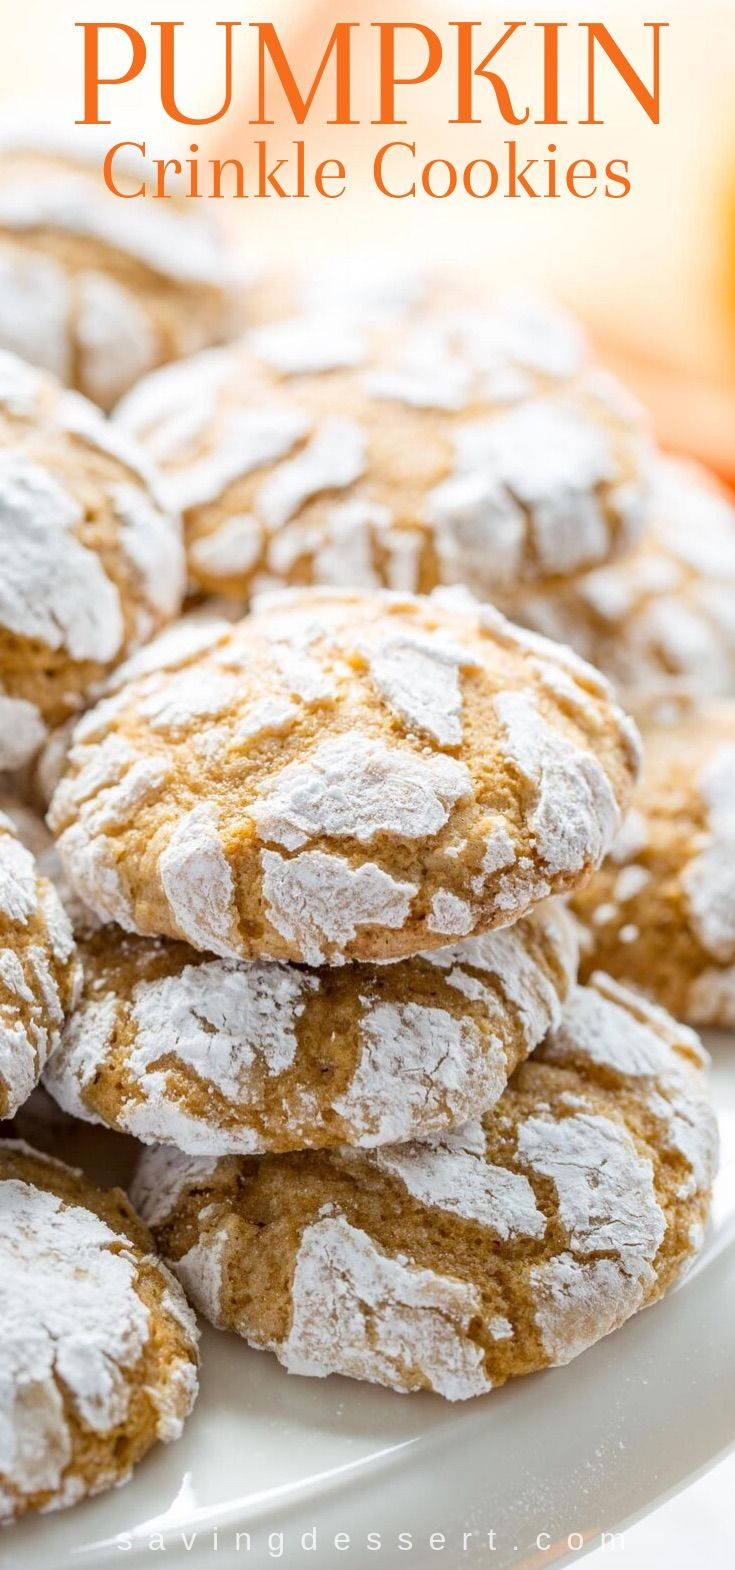 Pumpkin Crinkle Cookies ~ soft and sweet, with plenty of pumpkin flavor and pumpkin pie spice, these easy to make cookies are the perfect fall bite! #pumpkin #pumpkincrinklecookies #crinklecookies #cookies #dessert #fallcookies #autumnbaking